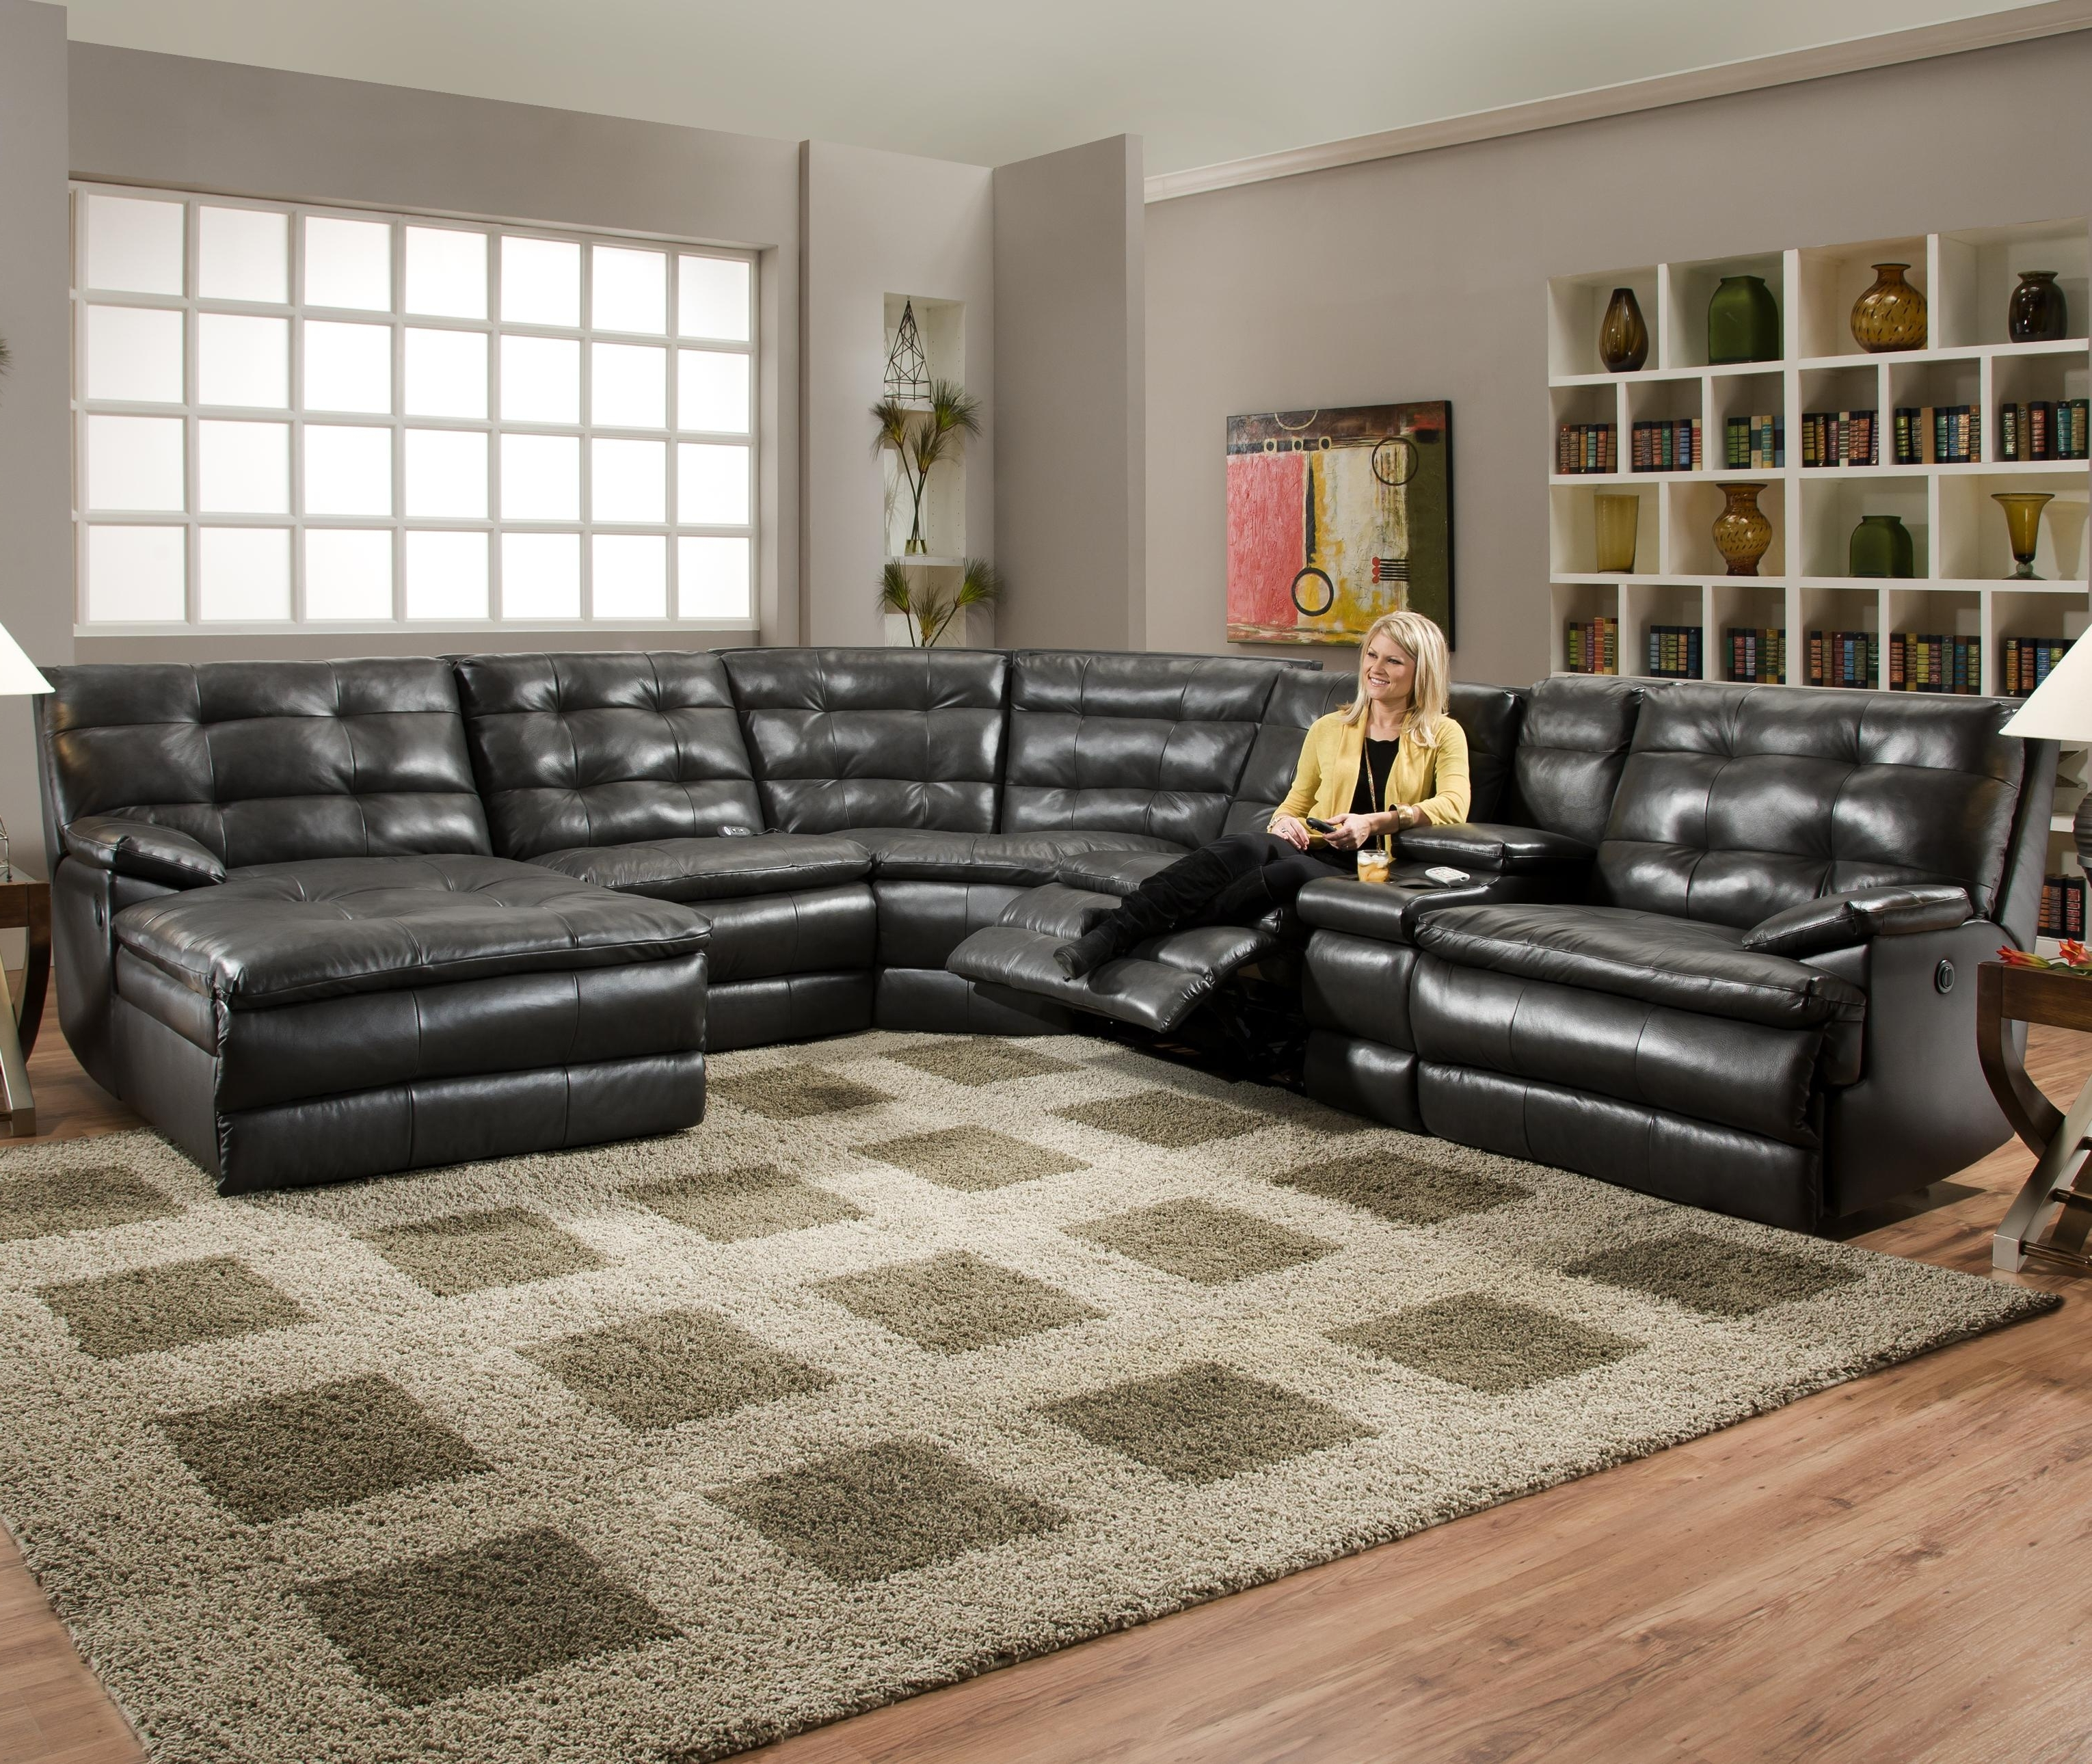 Luxurious Tufted Leather Sectional Sofa In Classy Black Color With Regarding Famous Extra Large Sectional Sofas With Chaise (View 9 of 15)